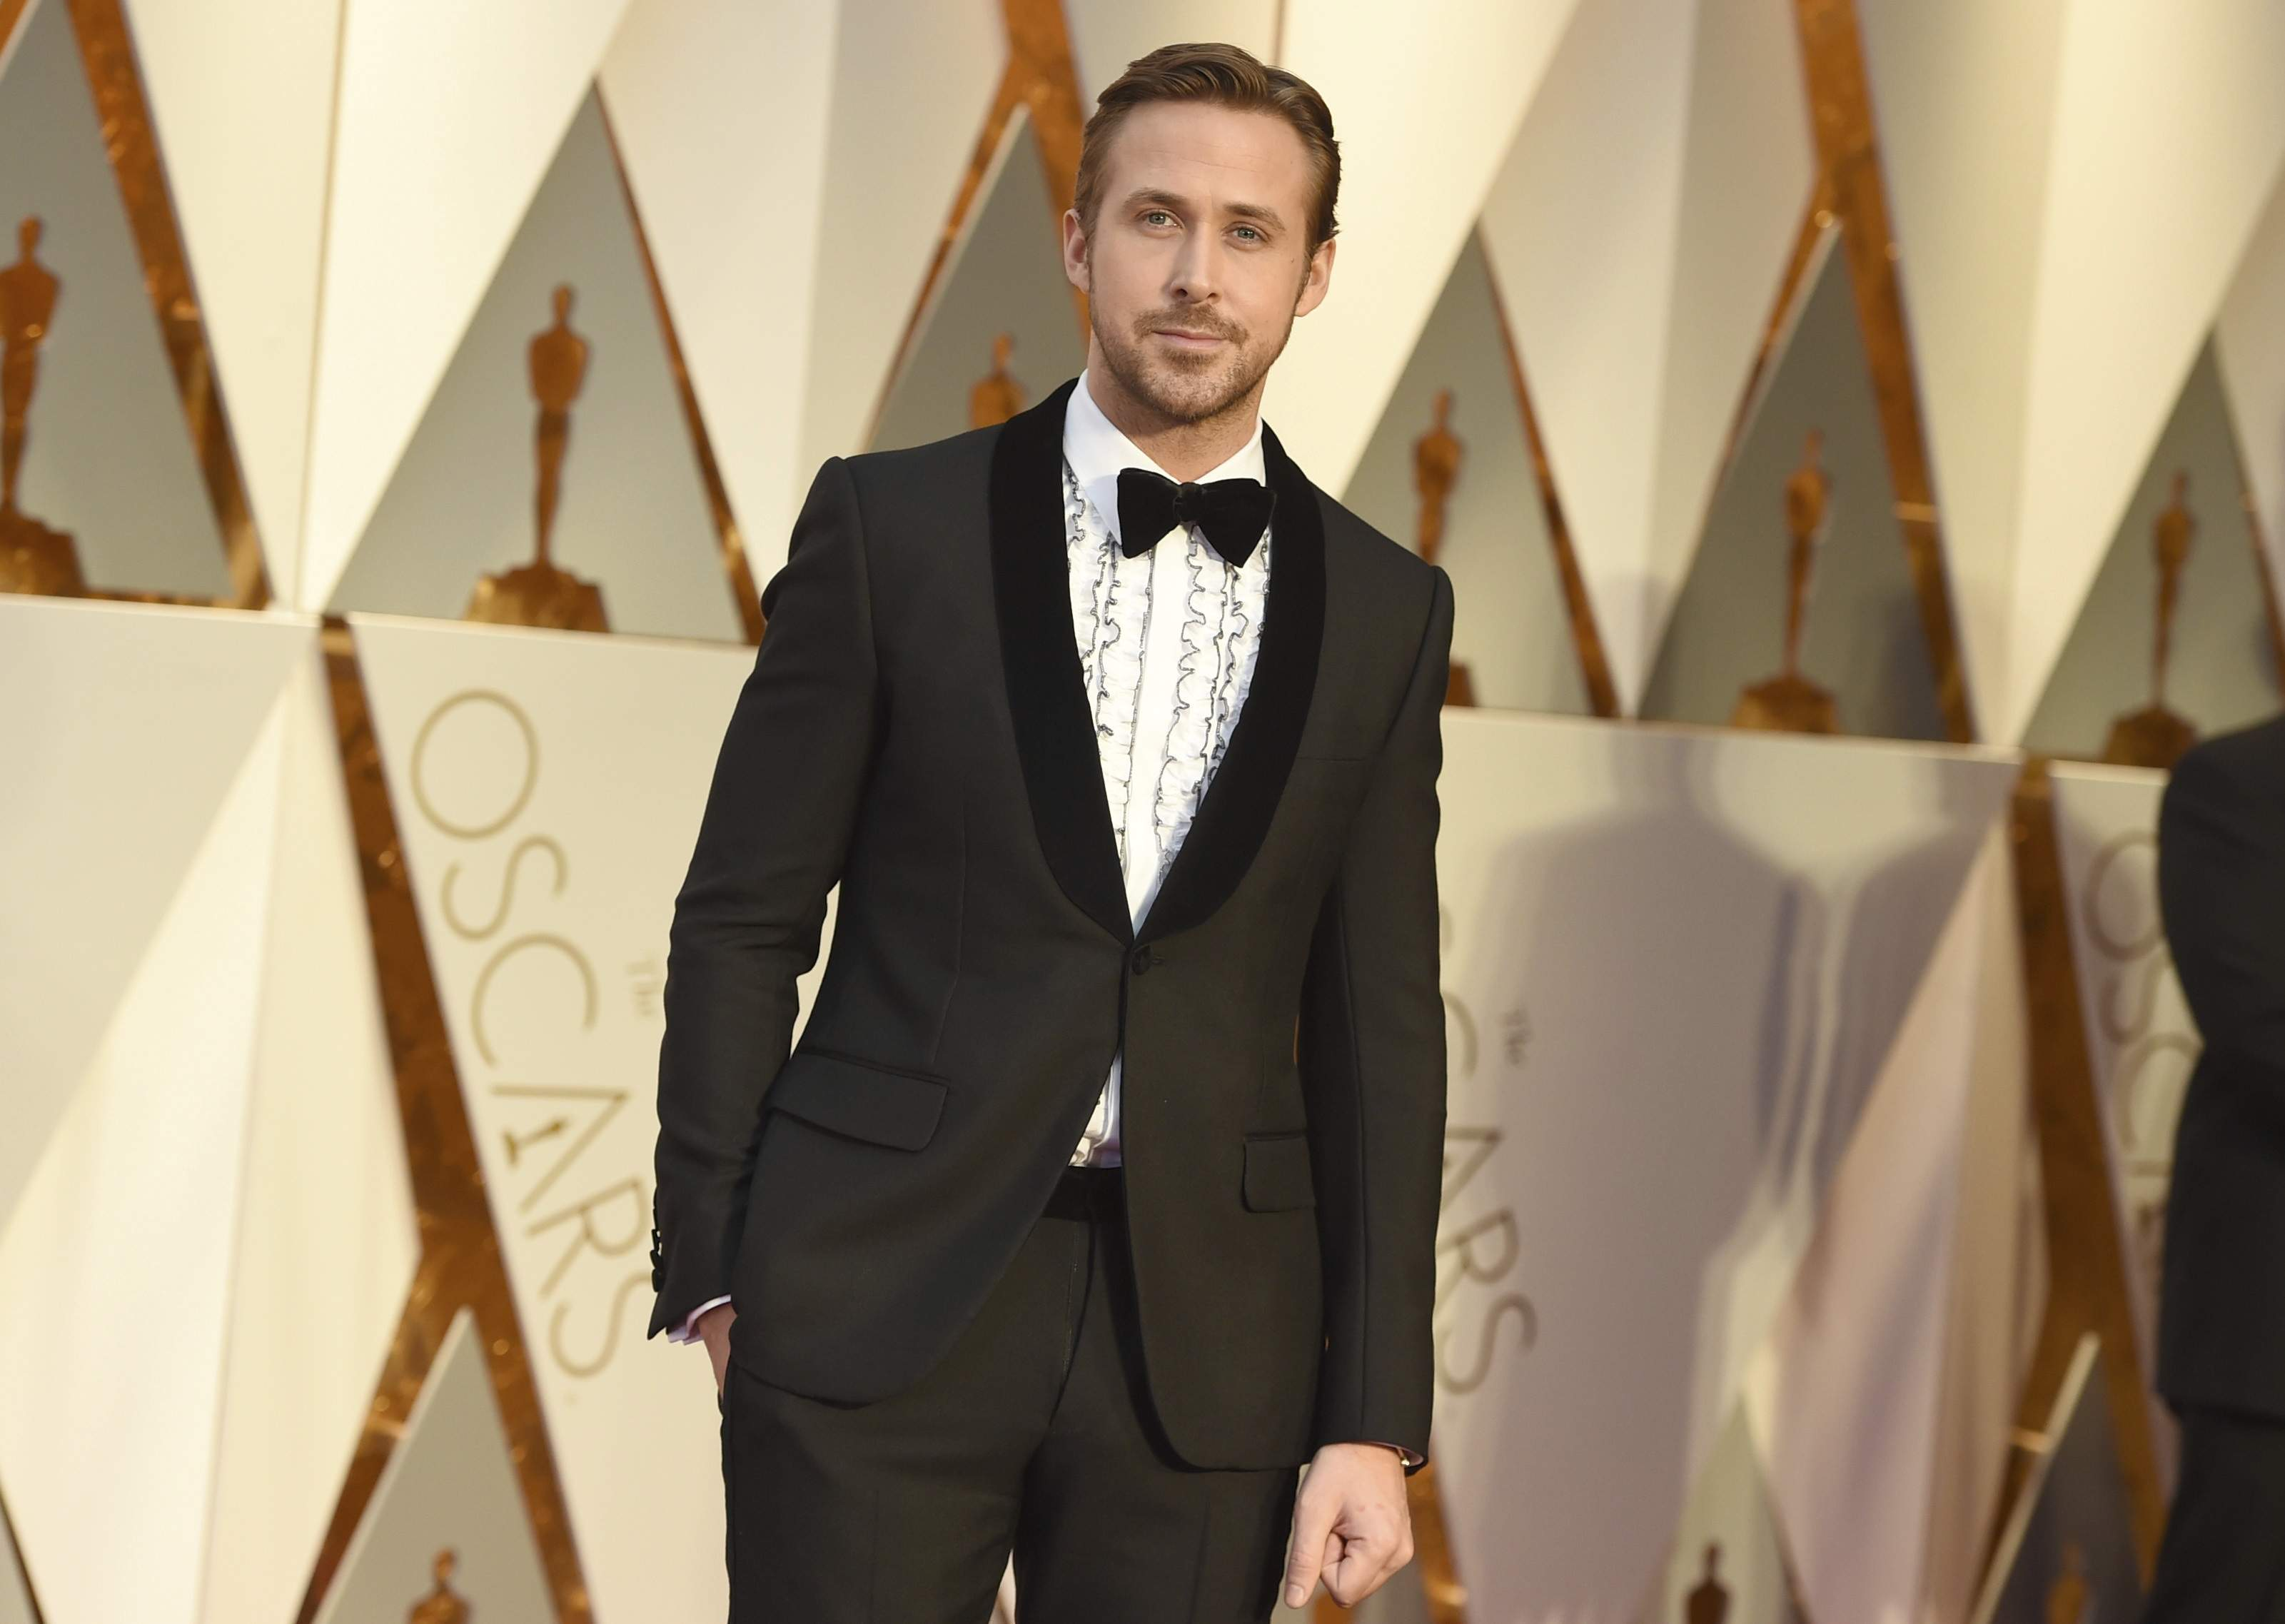 Ryan Gosling arrives at the Oscars on Sunday, Feb. 26, 2017, at the Dolby Theatre in Los Angeles. THE ASSOCIATED PRESS